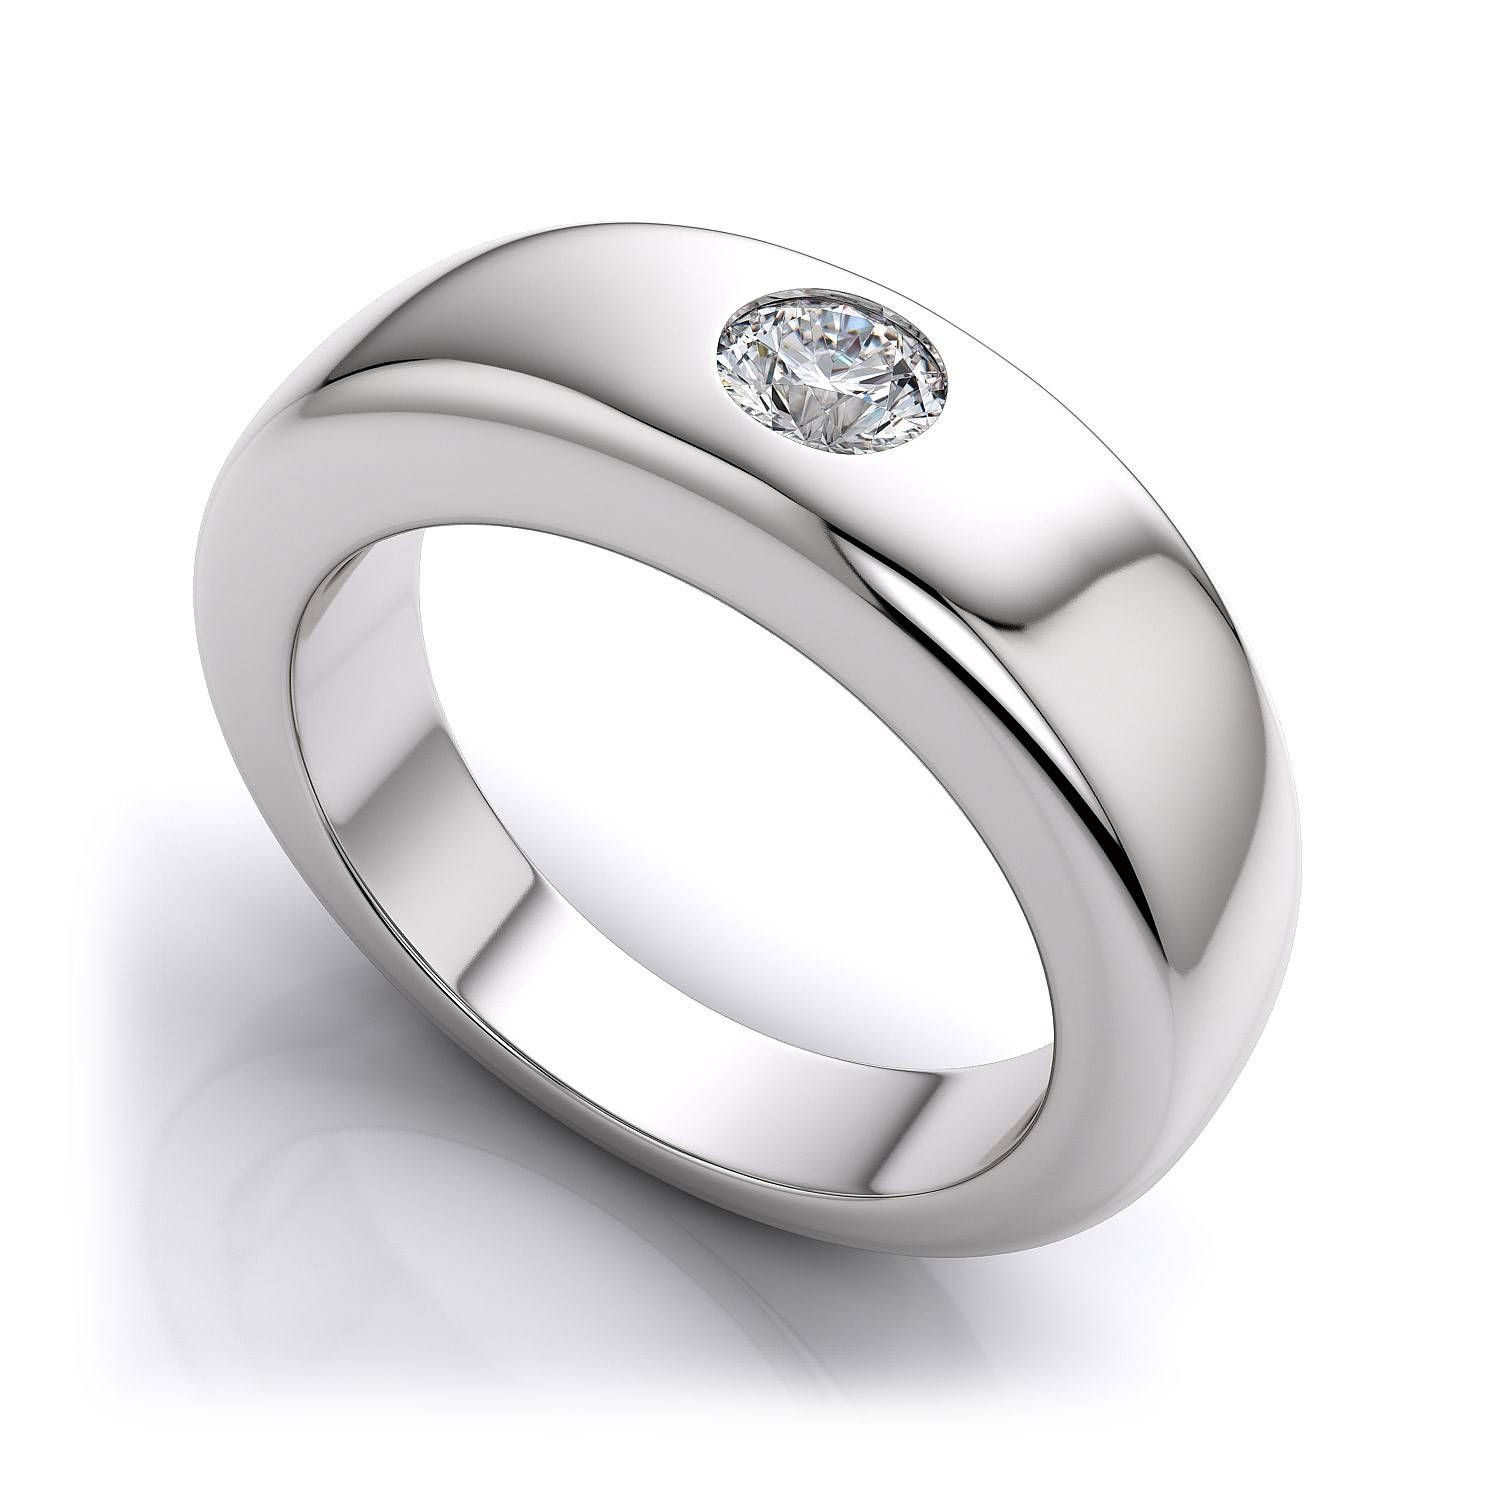 Wedding Rings : Unique Wedding Bands Can You Wear Platinum And Pertaining To Most Current Unique Anniversary Rings For Her (Gallery 21 of 25)